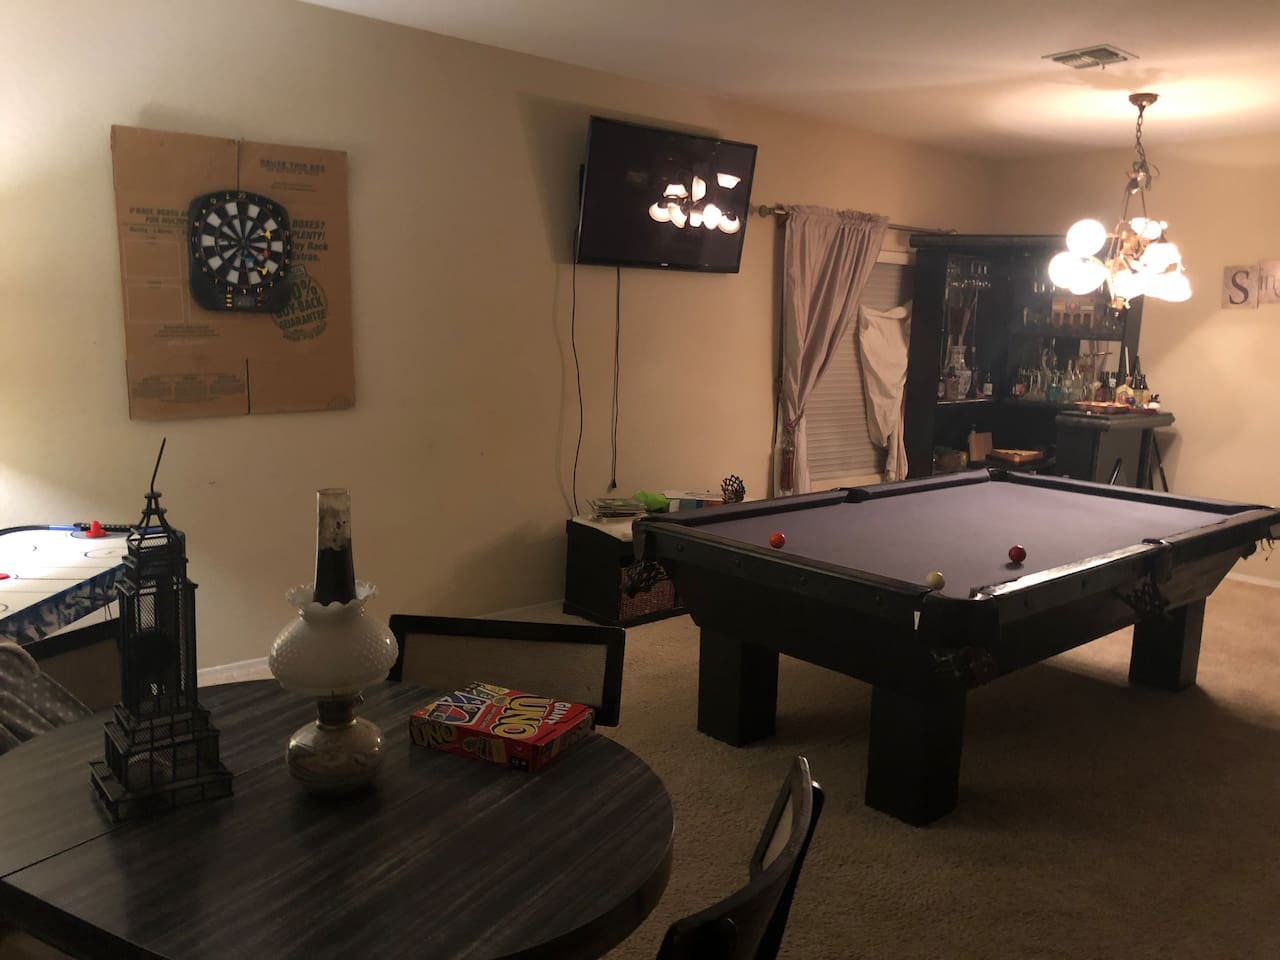 Billiards room at entry of home.